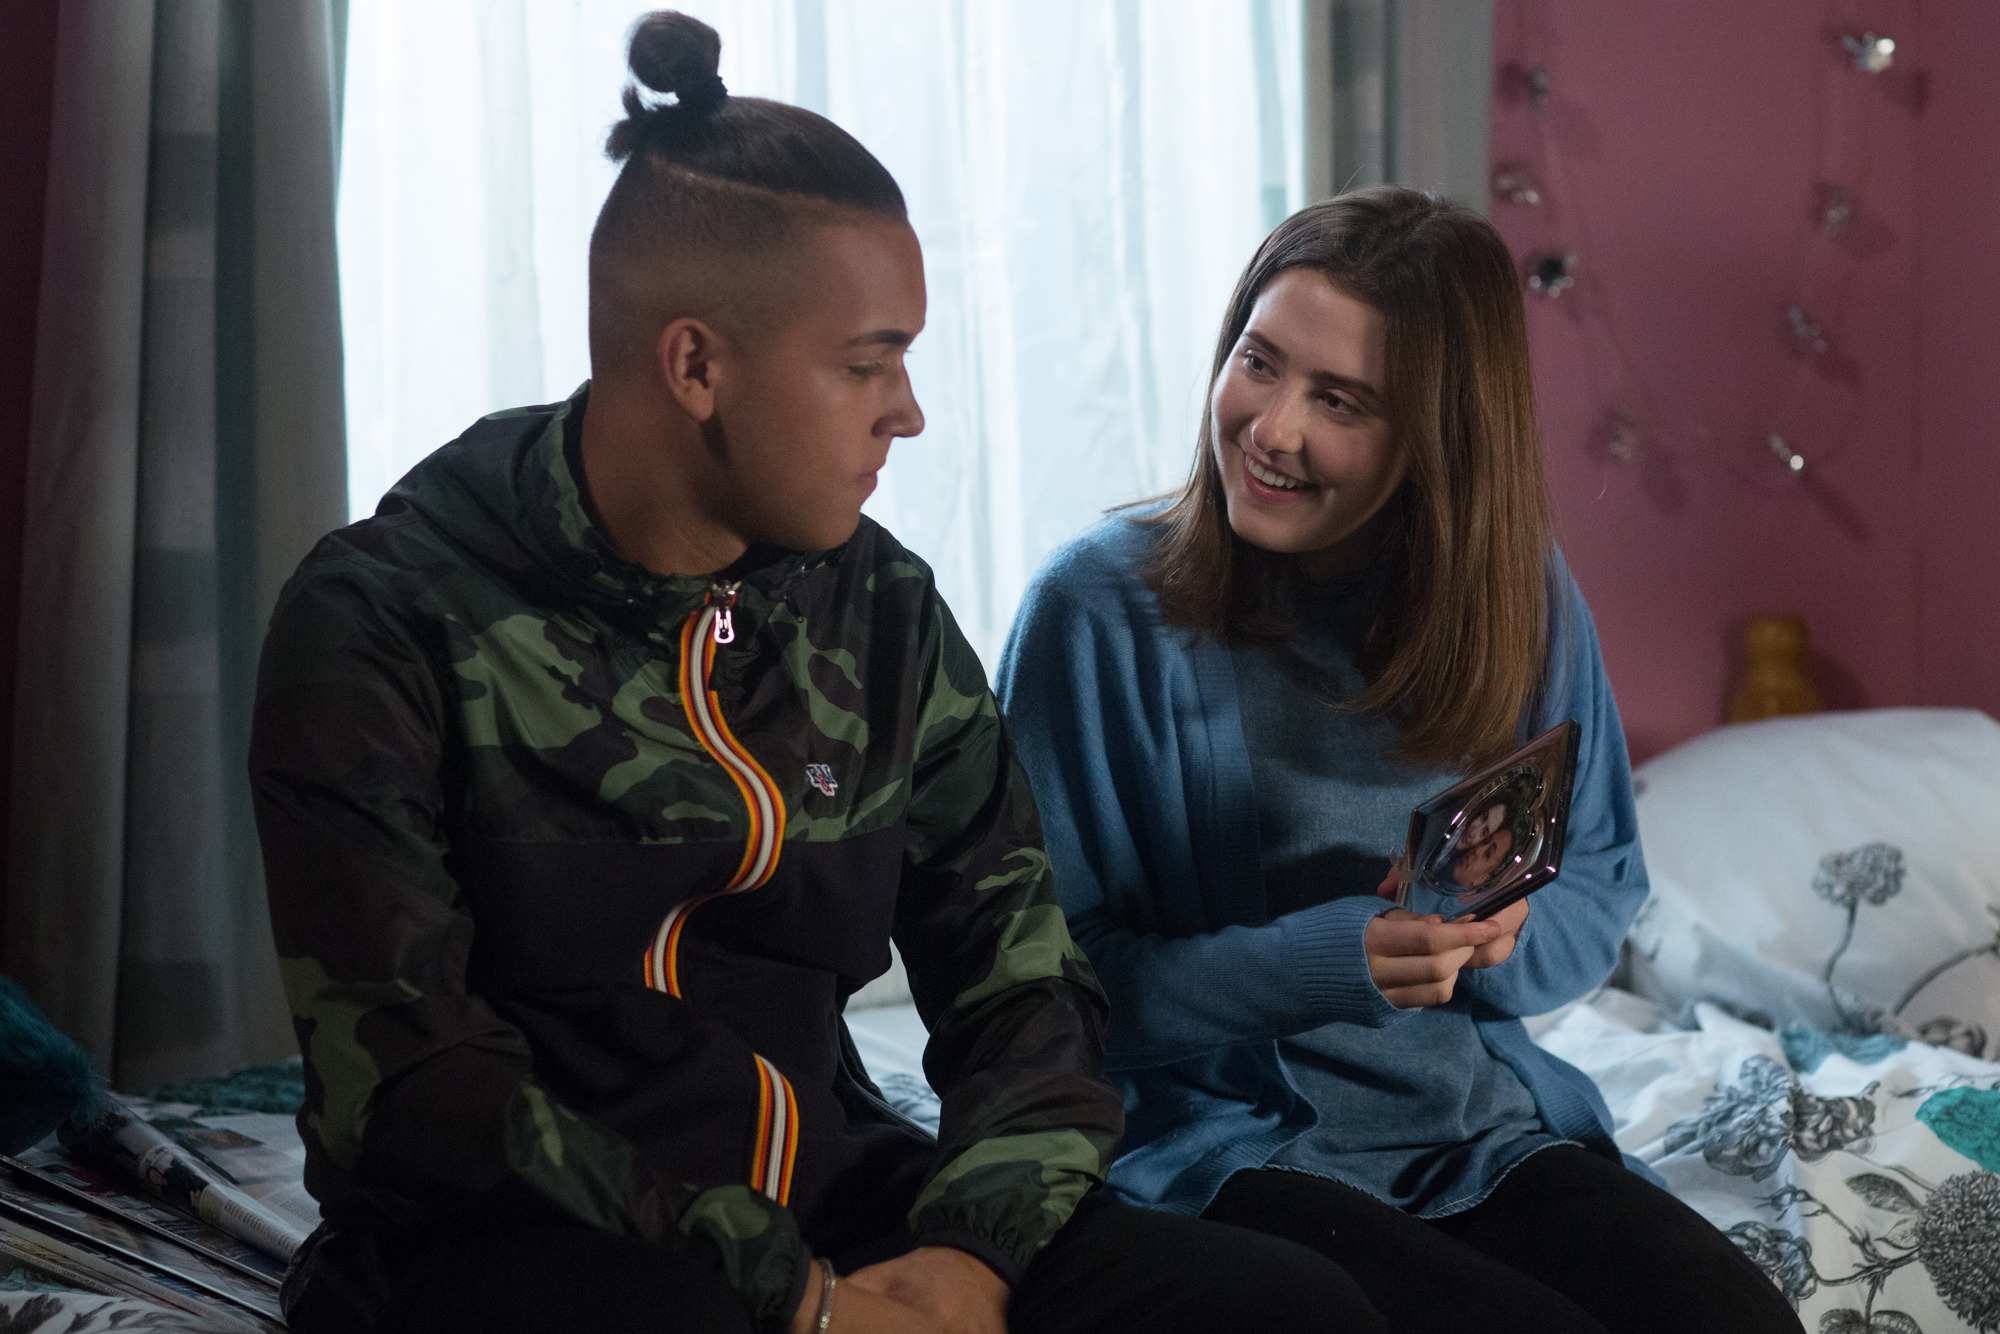 EastEnders spoilers: Bex Fowler to take risky sex photo for Shakil Kazemi?